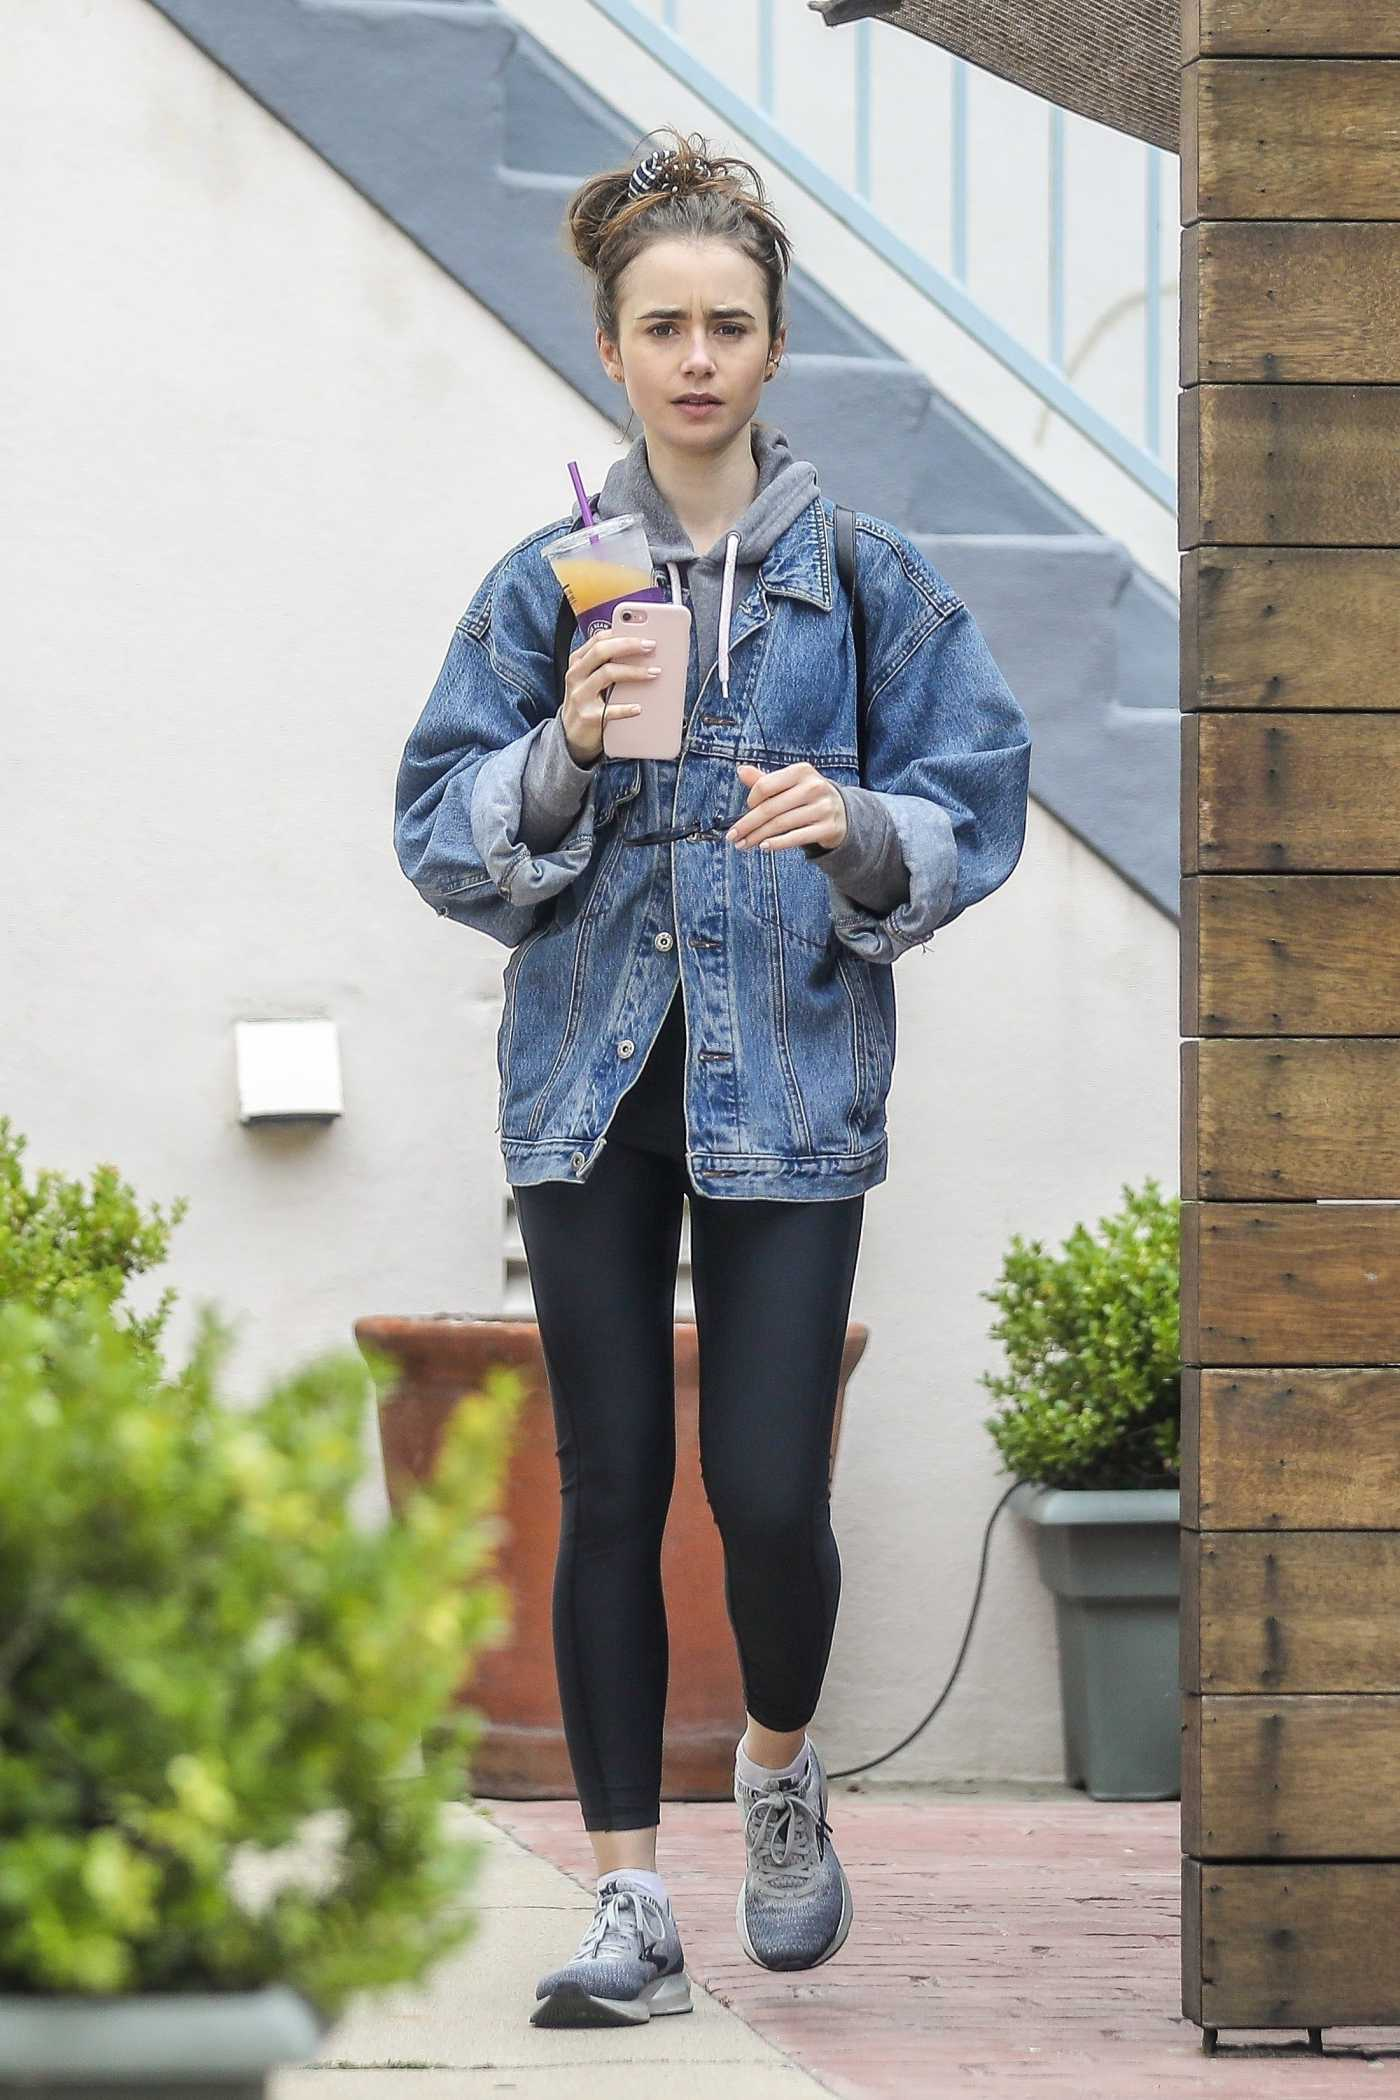 Lily Collins in a Blue Denim Jacket Was Seen Out in Westwood 06/25/2019